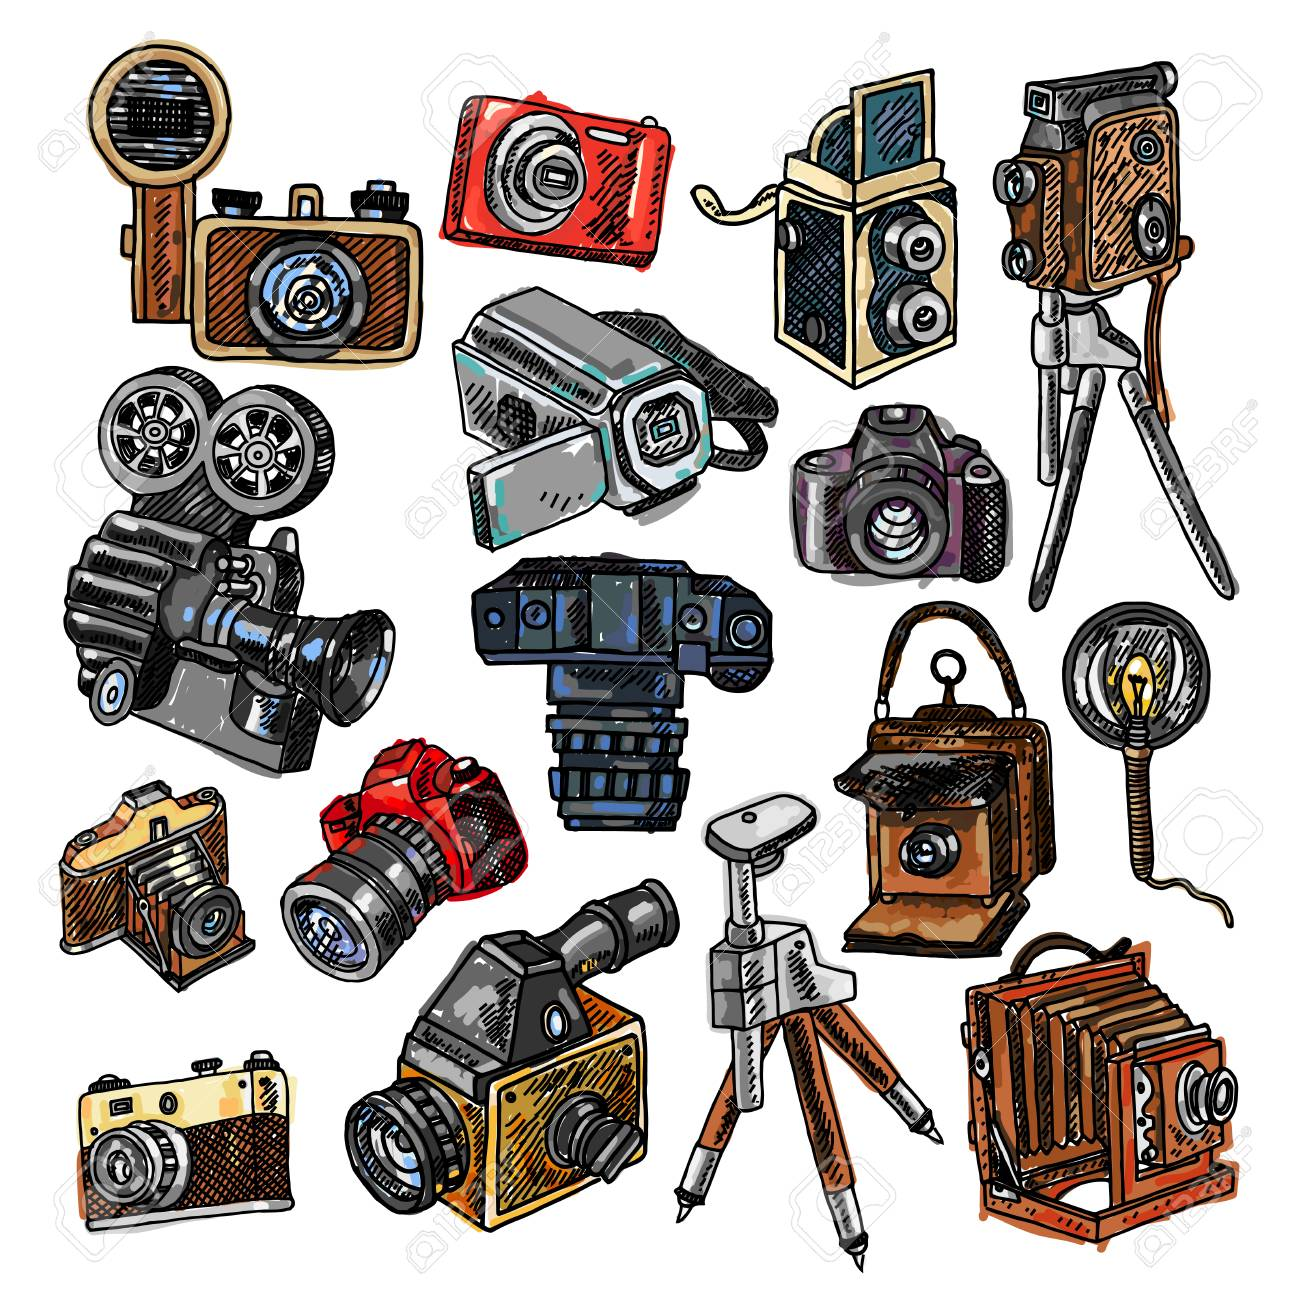 Old Mechanical Film And Automatic Modern Digital Reflex Cameras Royalty Free Cliparts Vectors And Stock Illustration Image 91000641